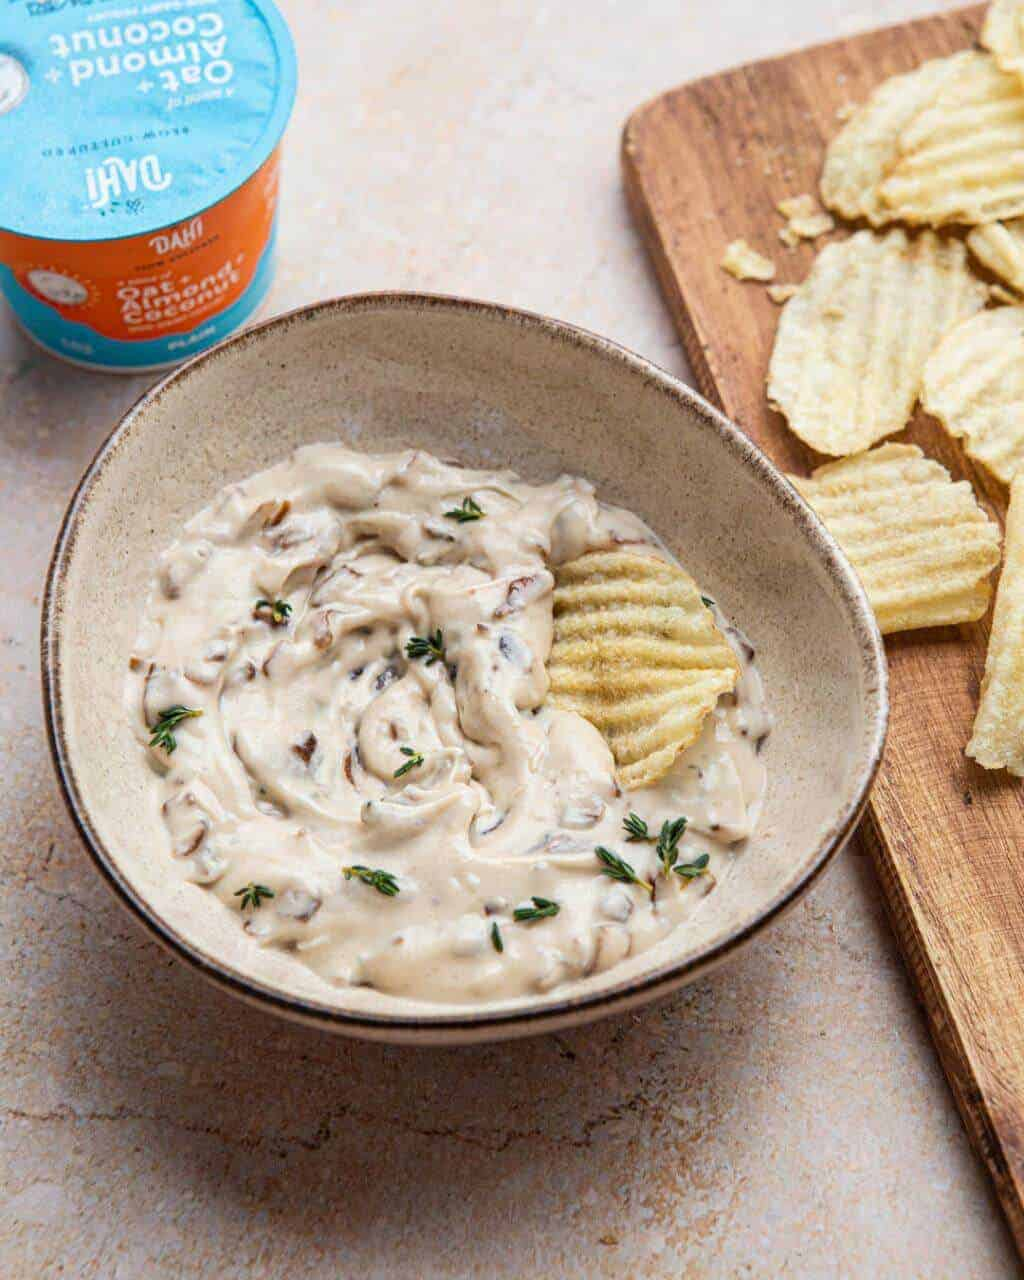 Vegan French Onion Dip in a Bowl with Some Potato Chips for Dipping